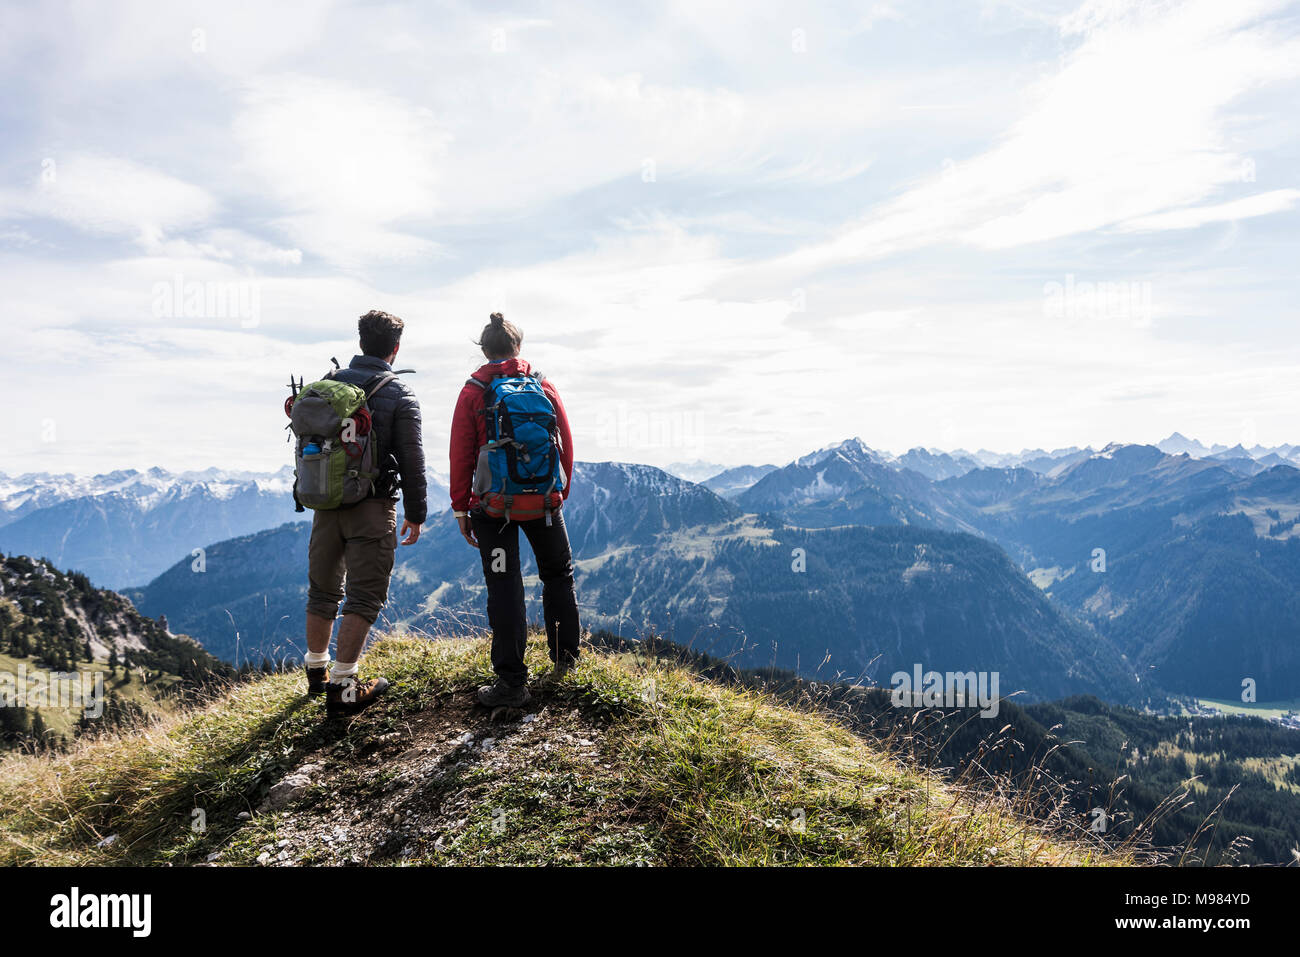 Autriche, Tyrol, jeune couple standing in mountainscape looking at view Photo Stock